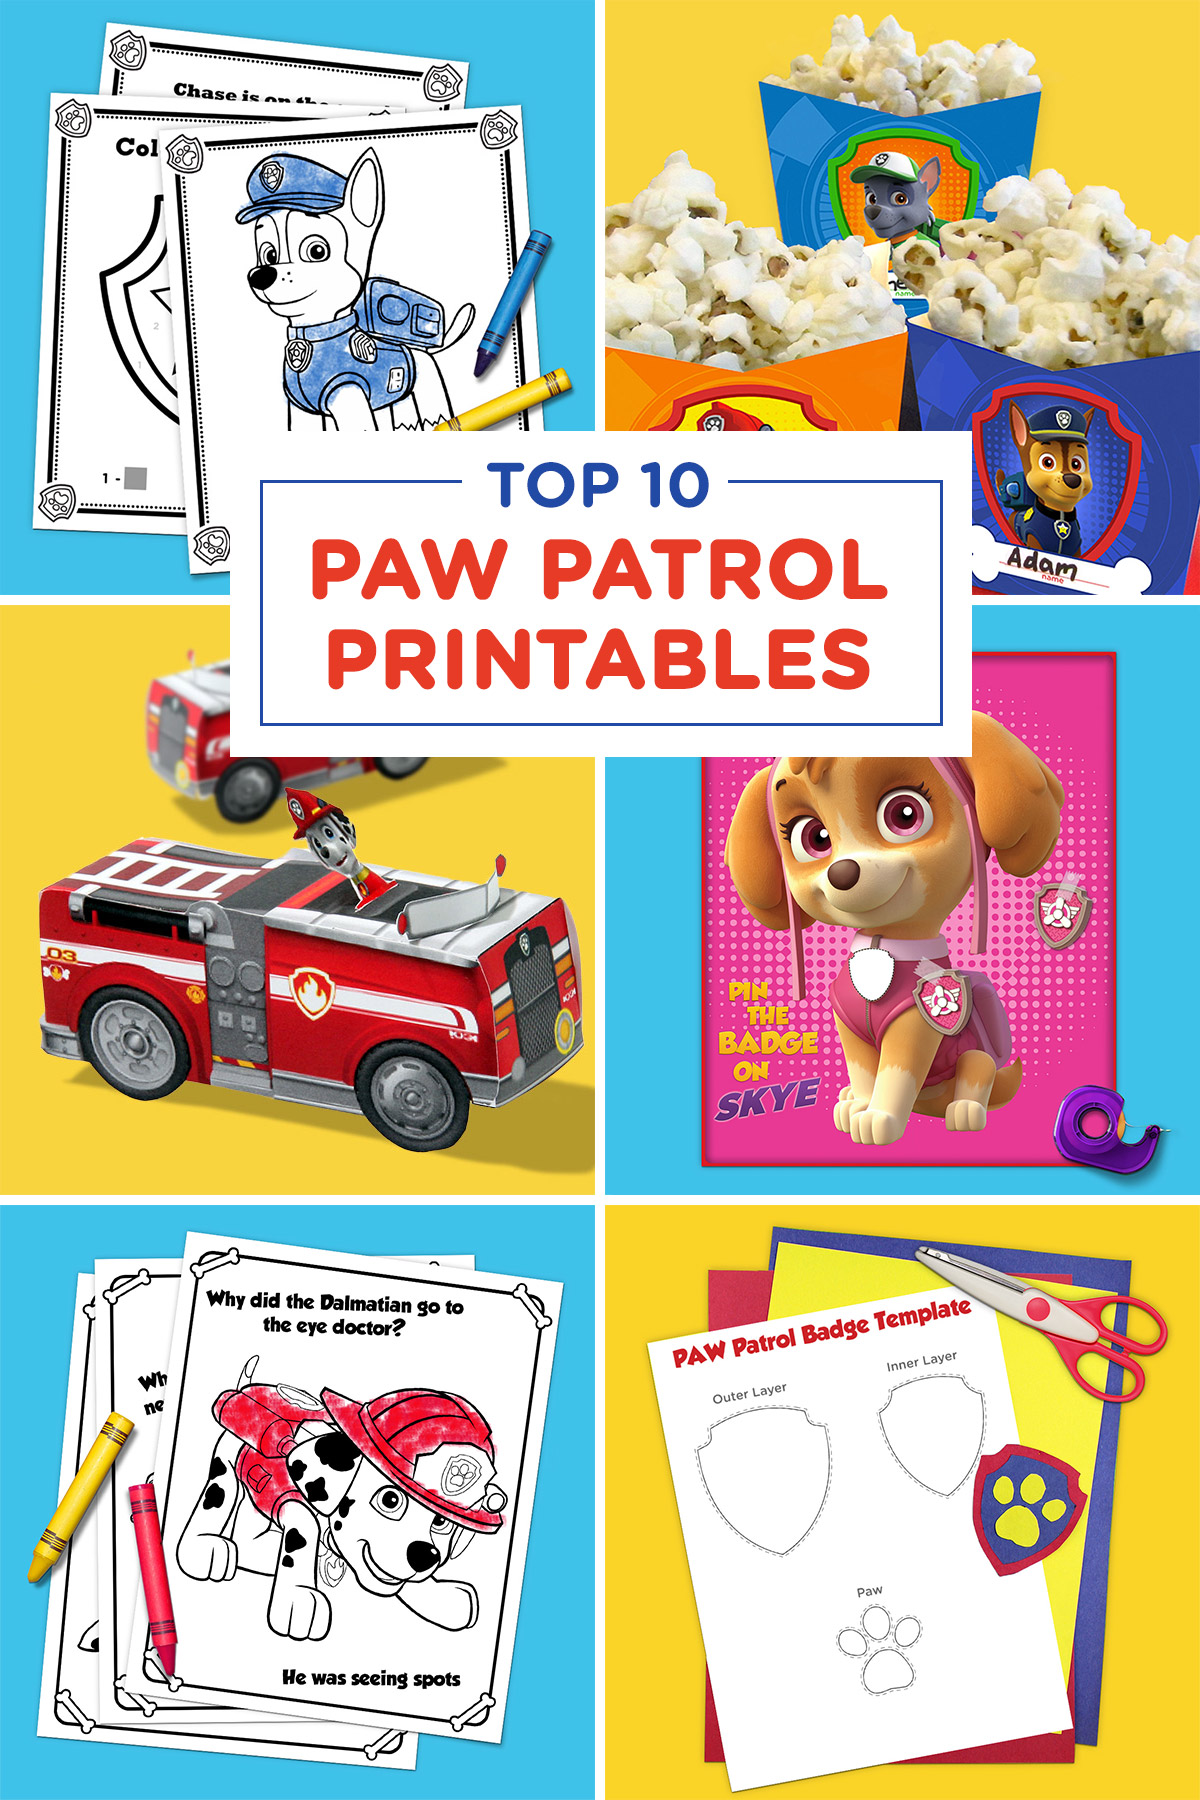 graphic about Paw Patrol Printable Pictures titled The Greatest 10 PAW Patrol Printables of All Season Nickelodeon